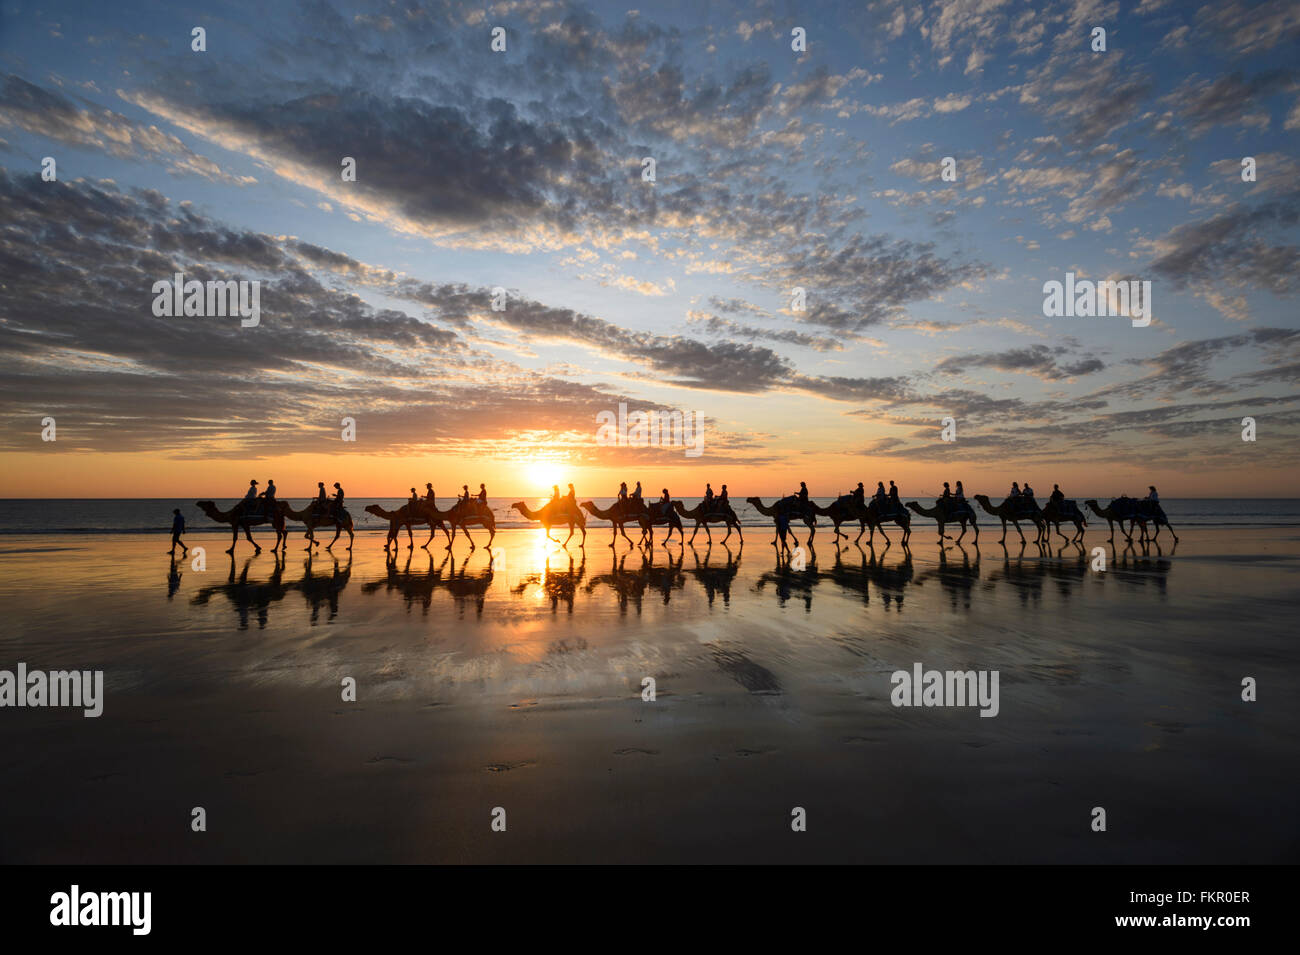 Tourist camel train on Cable Beach at sunset, Broome, Kimberley Region, Western Australia, WA, Australia Stock Photo